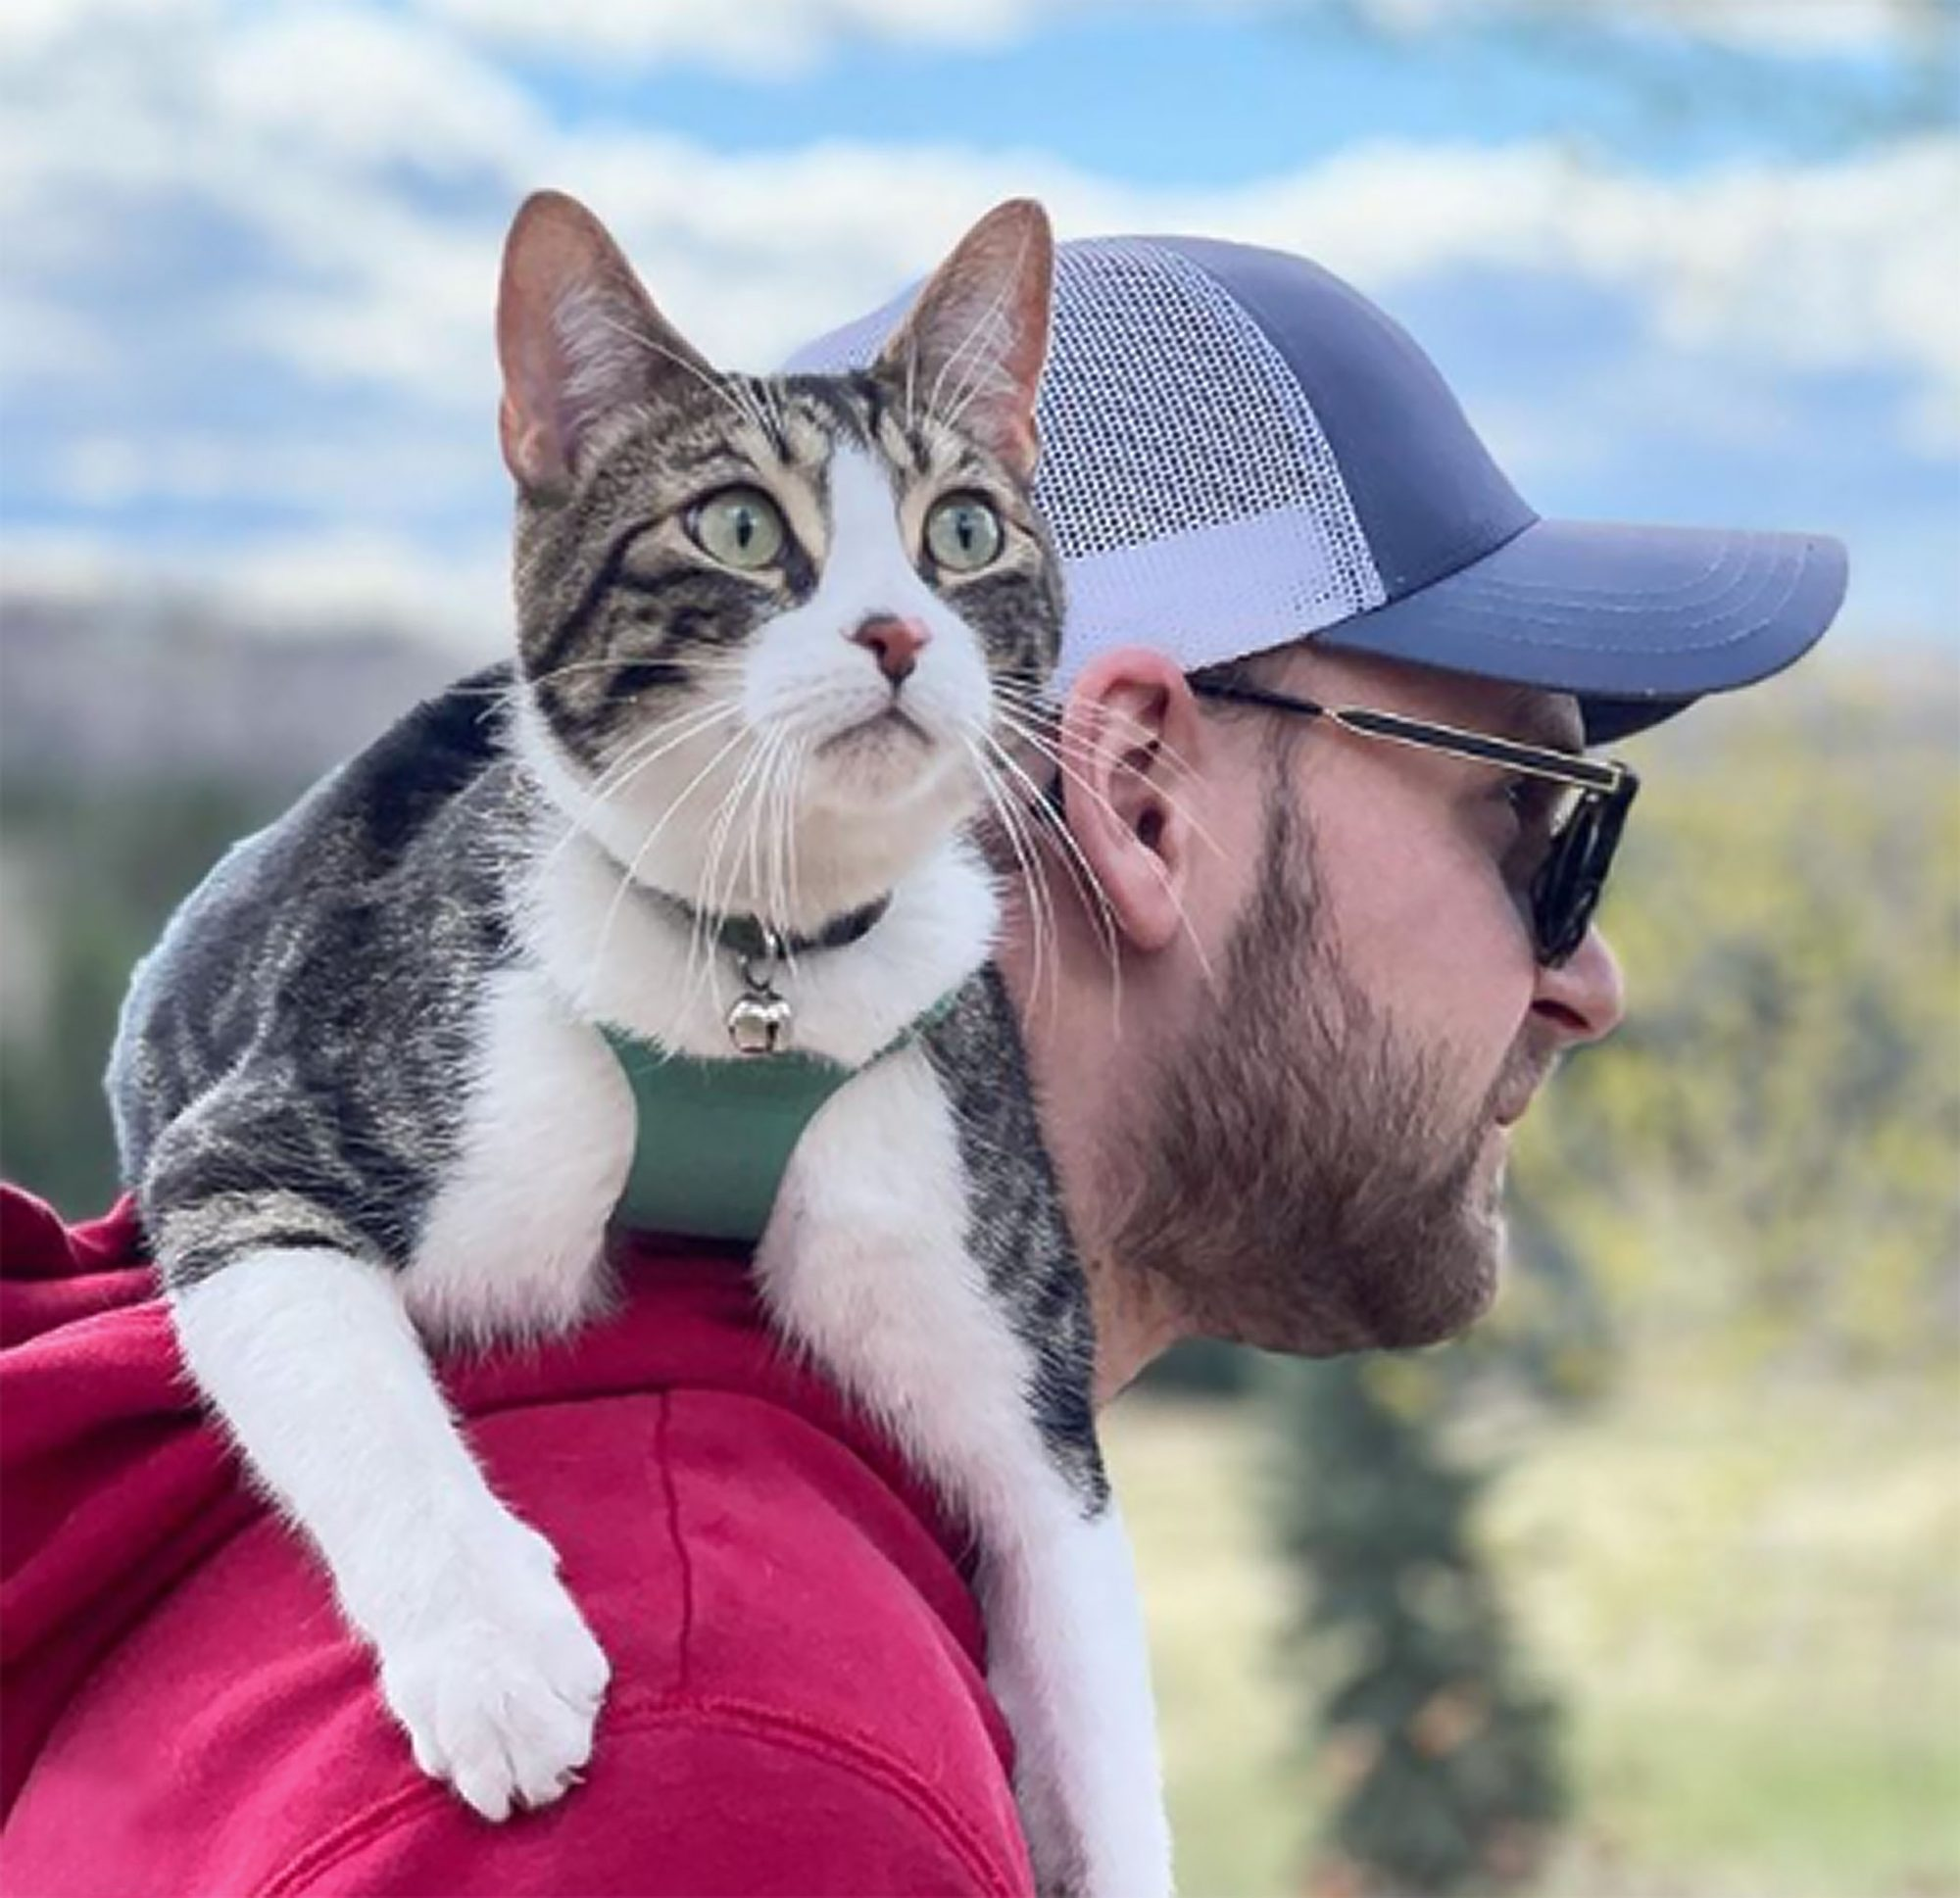 cat in harness on shoulders of man before slipping his harness